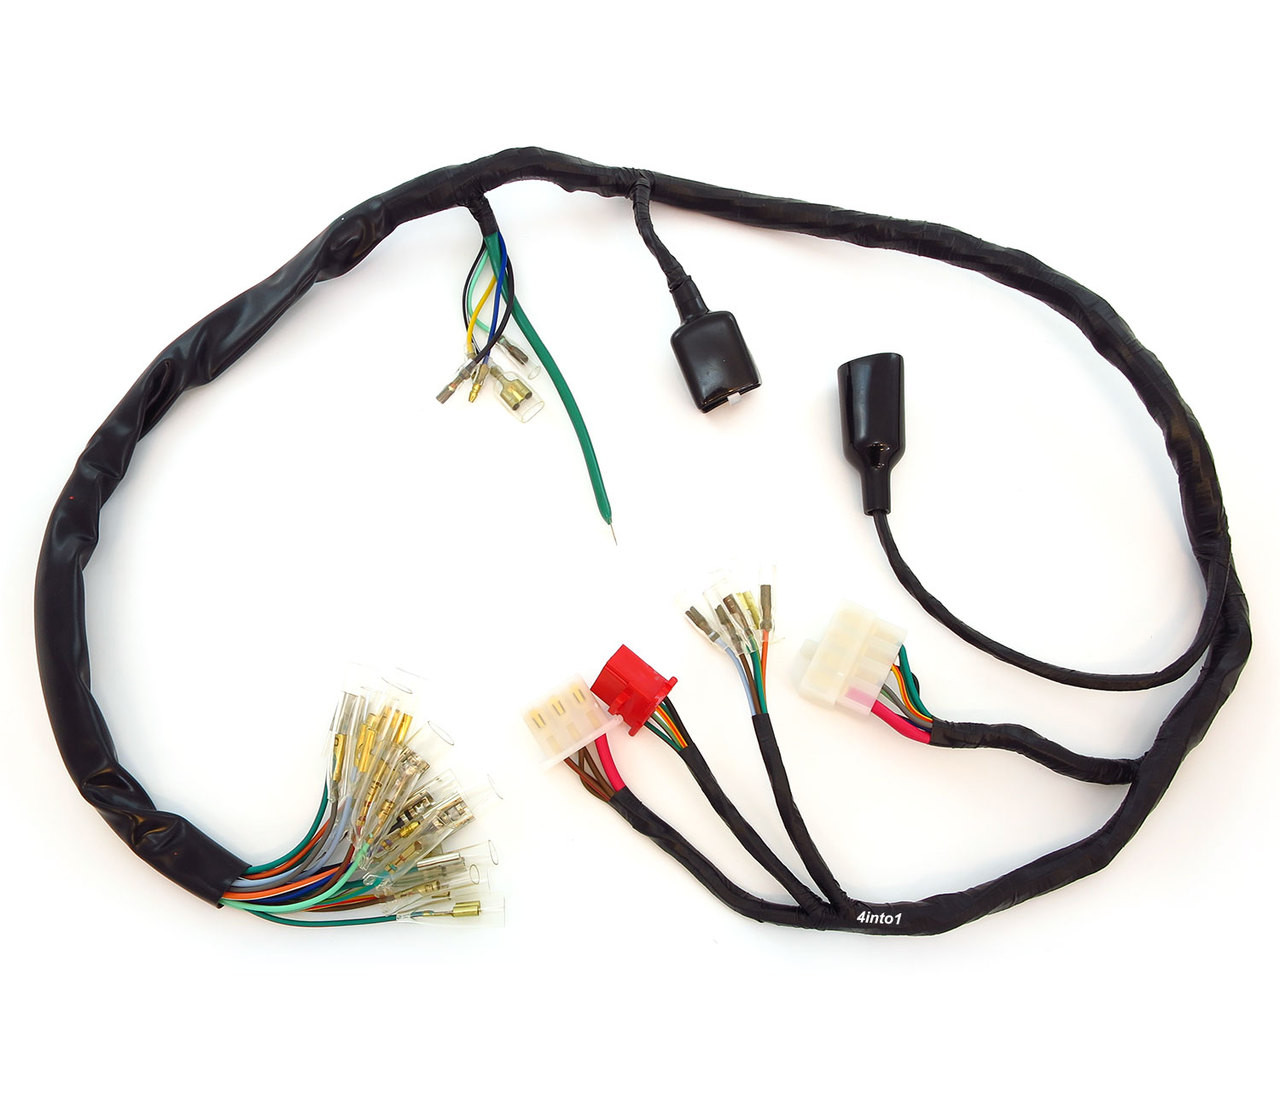 ct90 wiring harness wiring diagrams schemawiring harness honda ct90 k4 wiring  diagram data 69 ct90 wiring